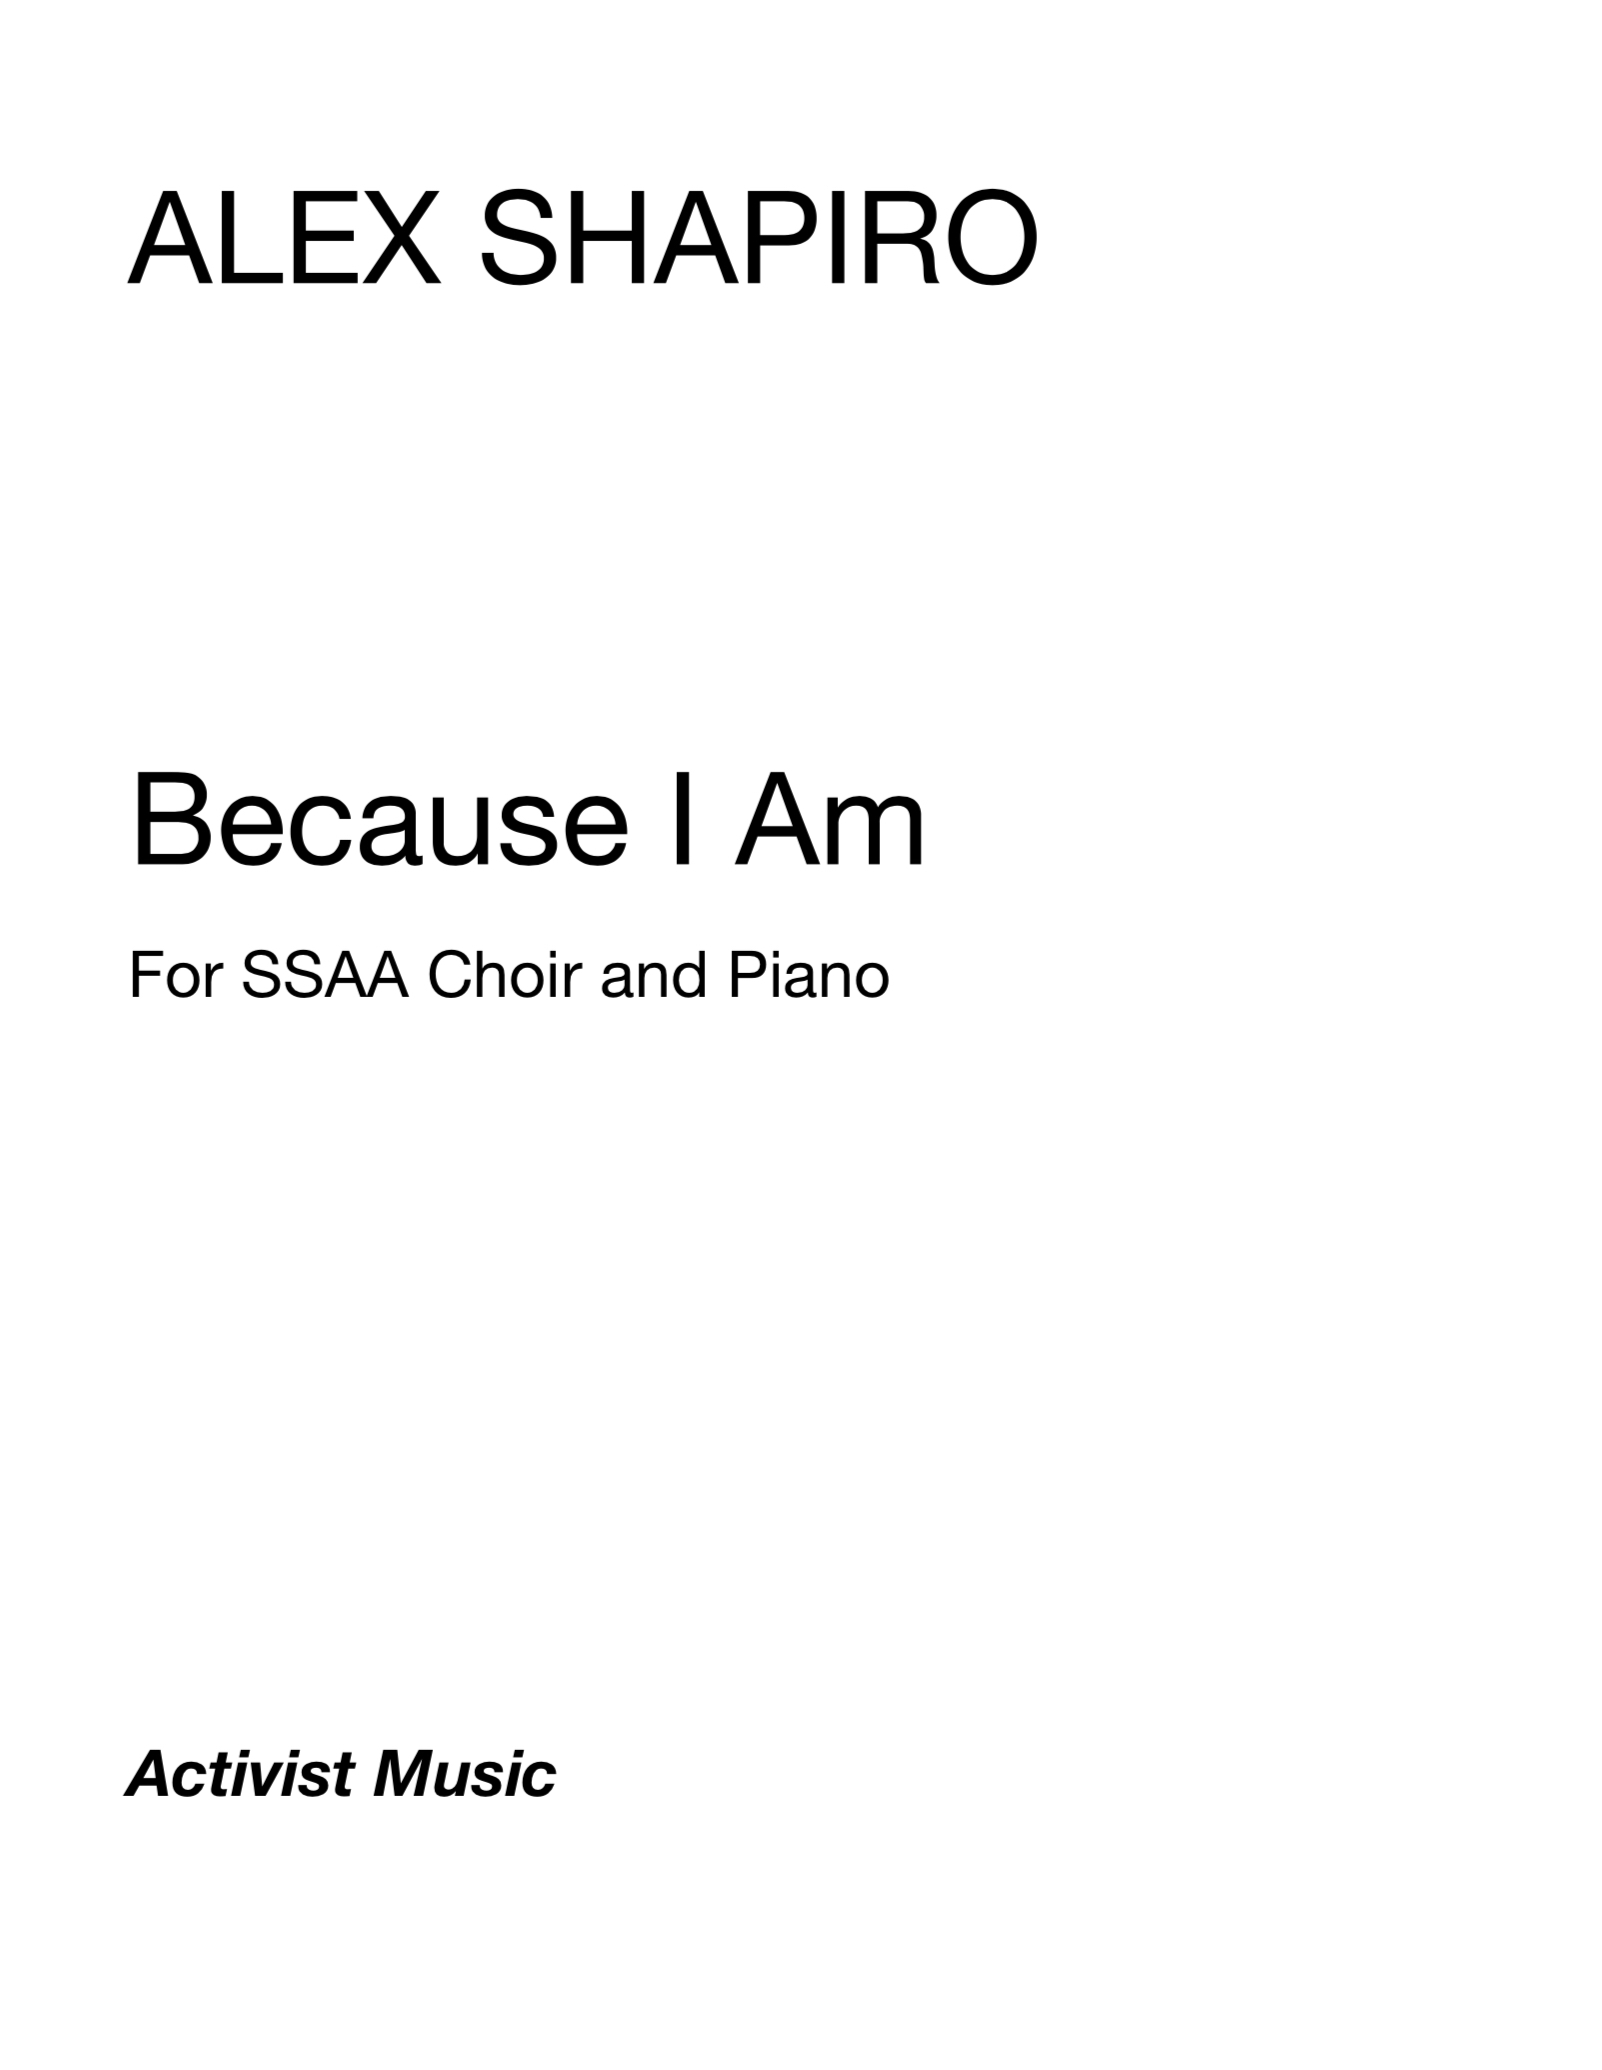 Because I Am by Alex Shapiro